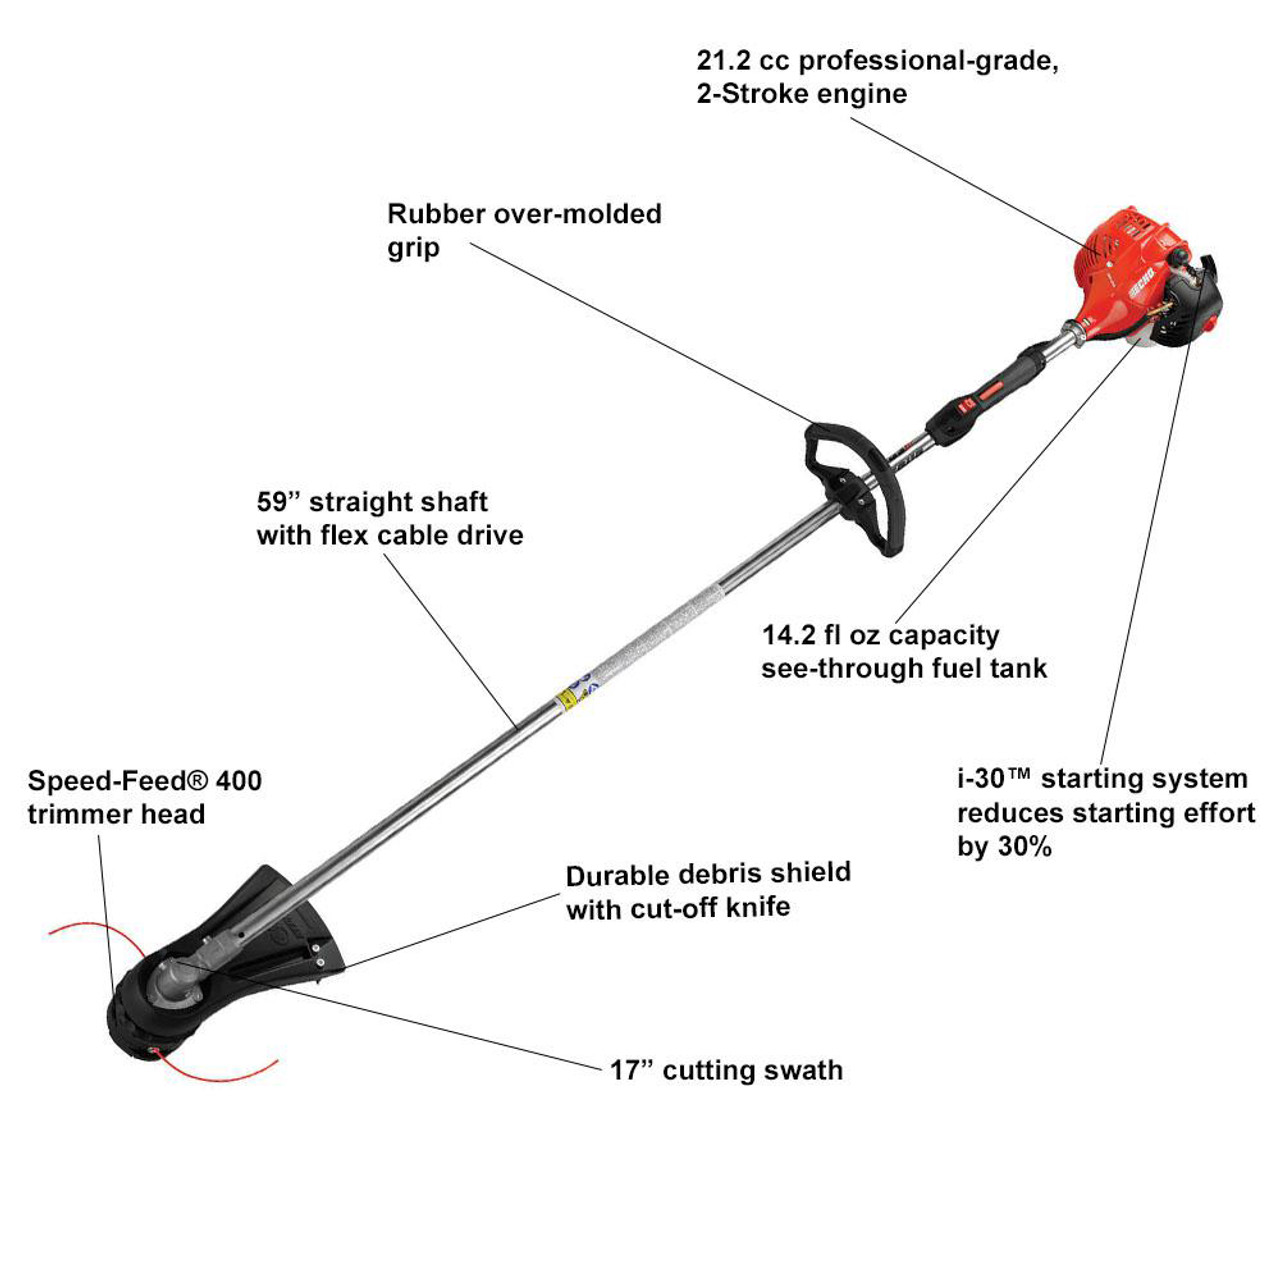 Echo Srm 225 21 2cc Straight Shaft String Trimmer With I 30 Easy Start System Sohars